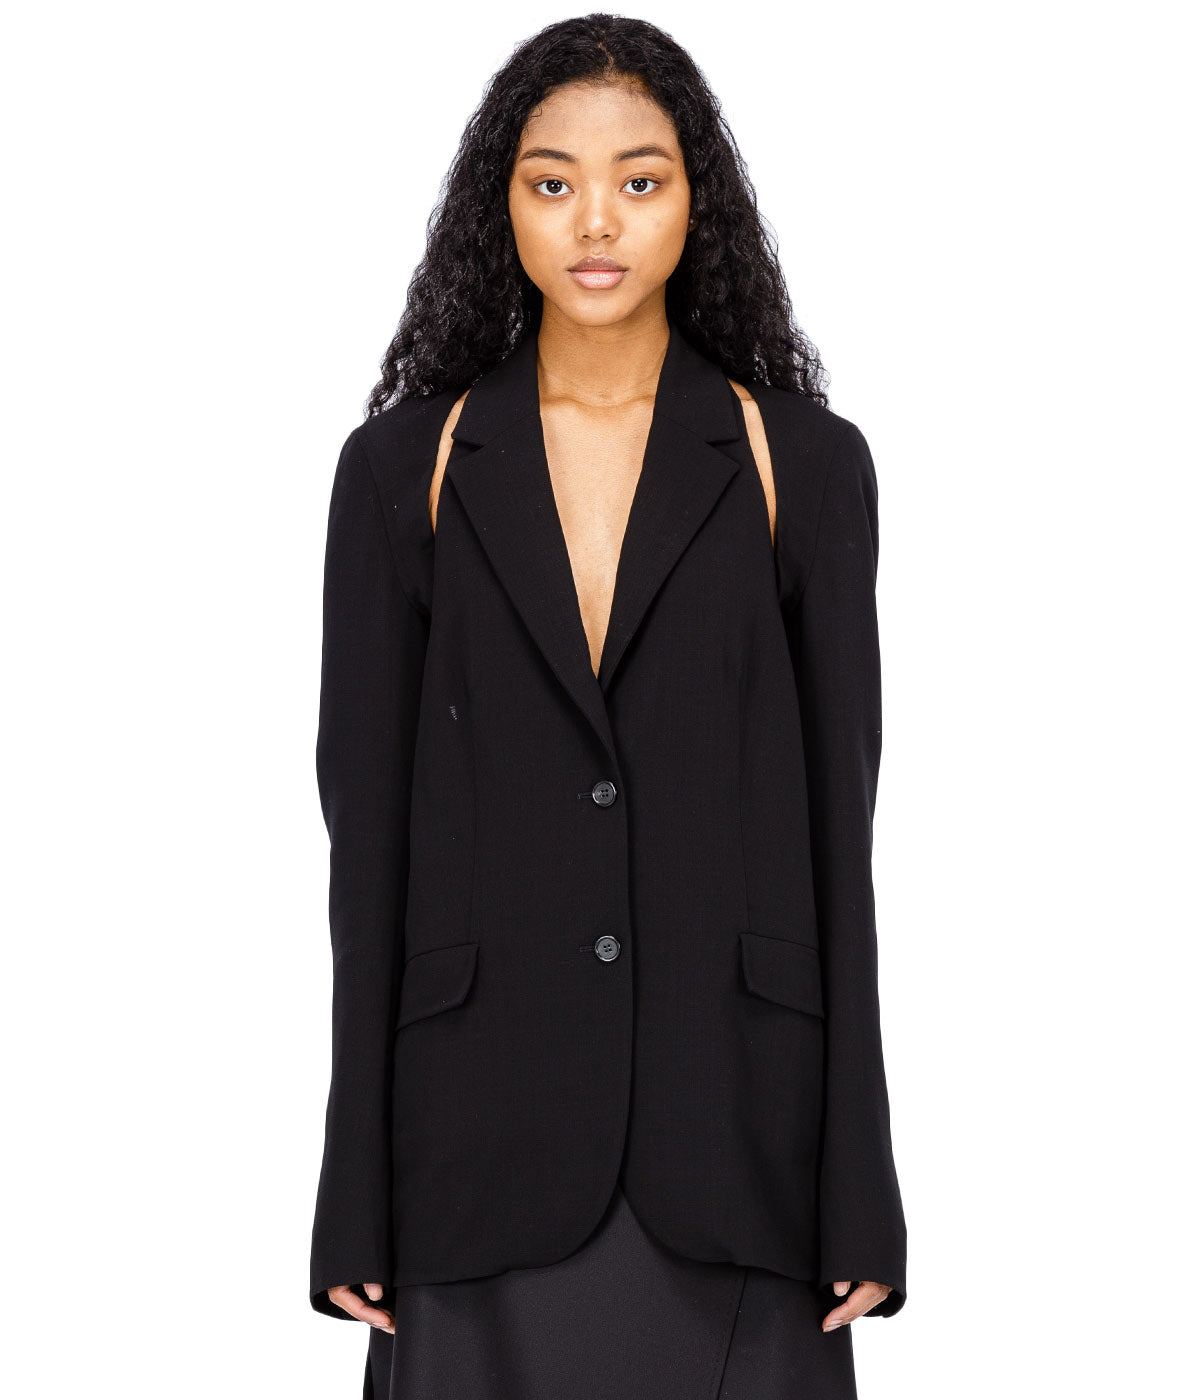 Black Wool Cut Out Blazer